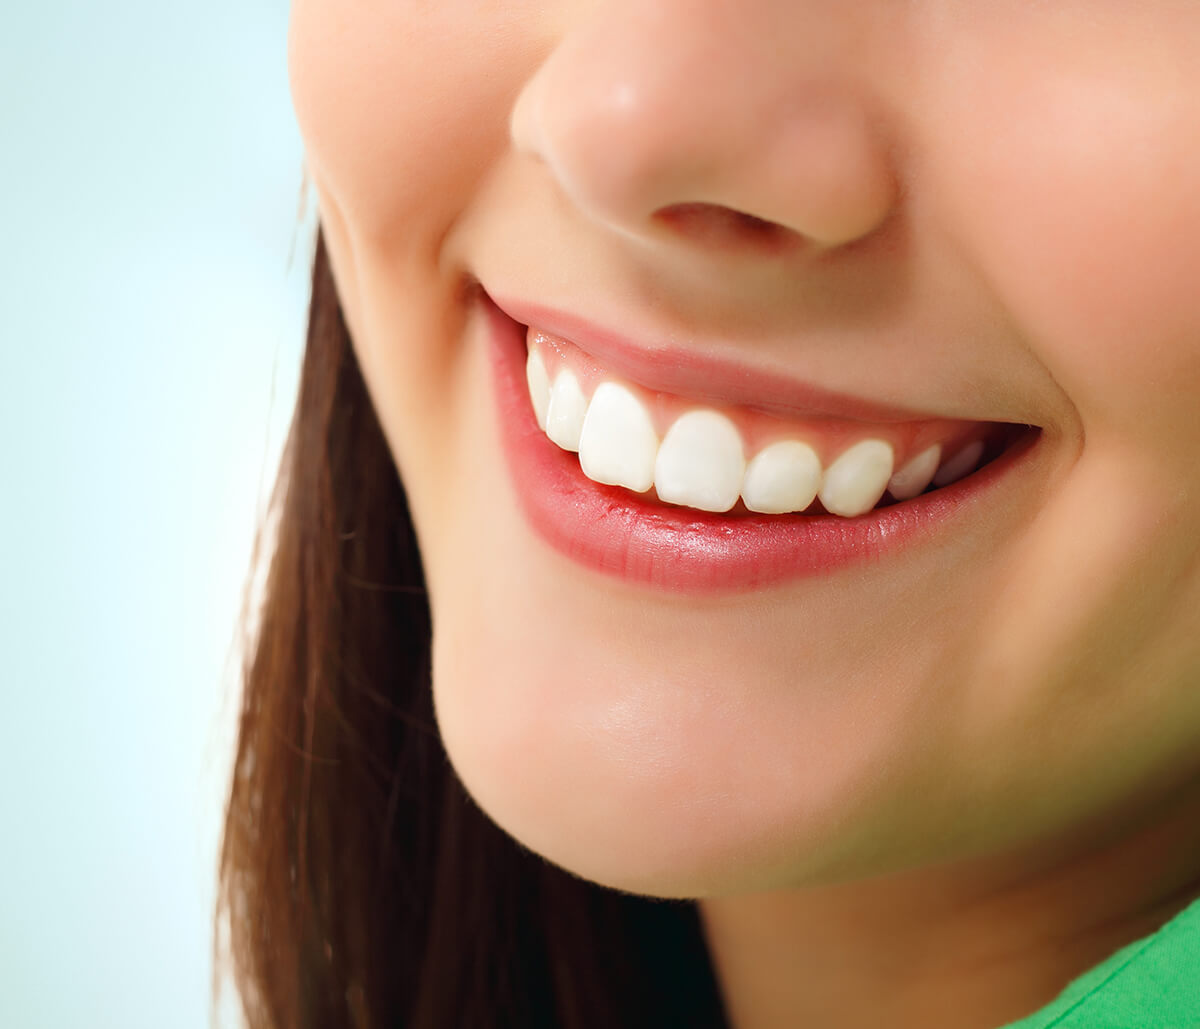 Teeth Whitening Services with Dr. Leo Arellano in San Francisco Area